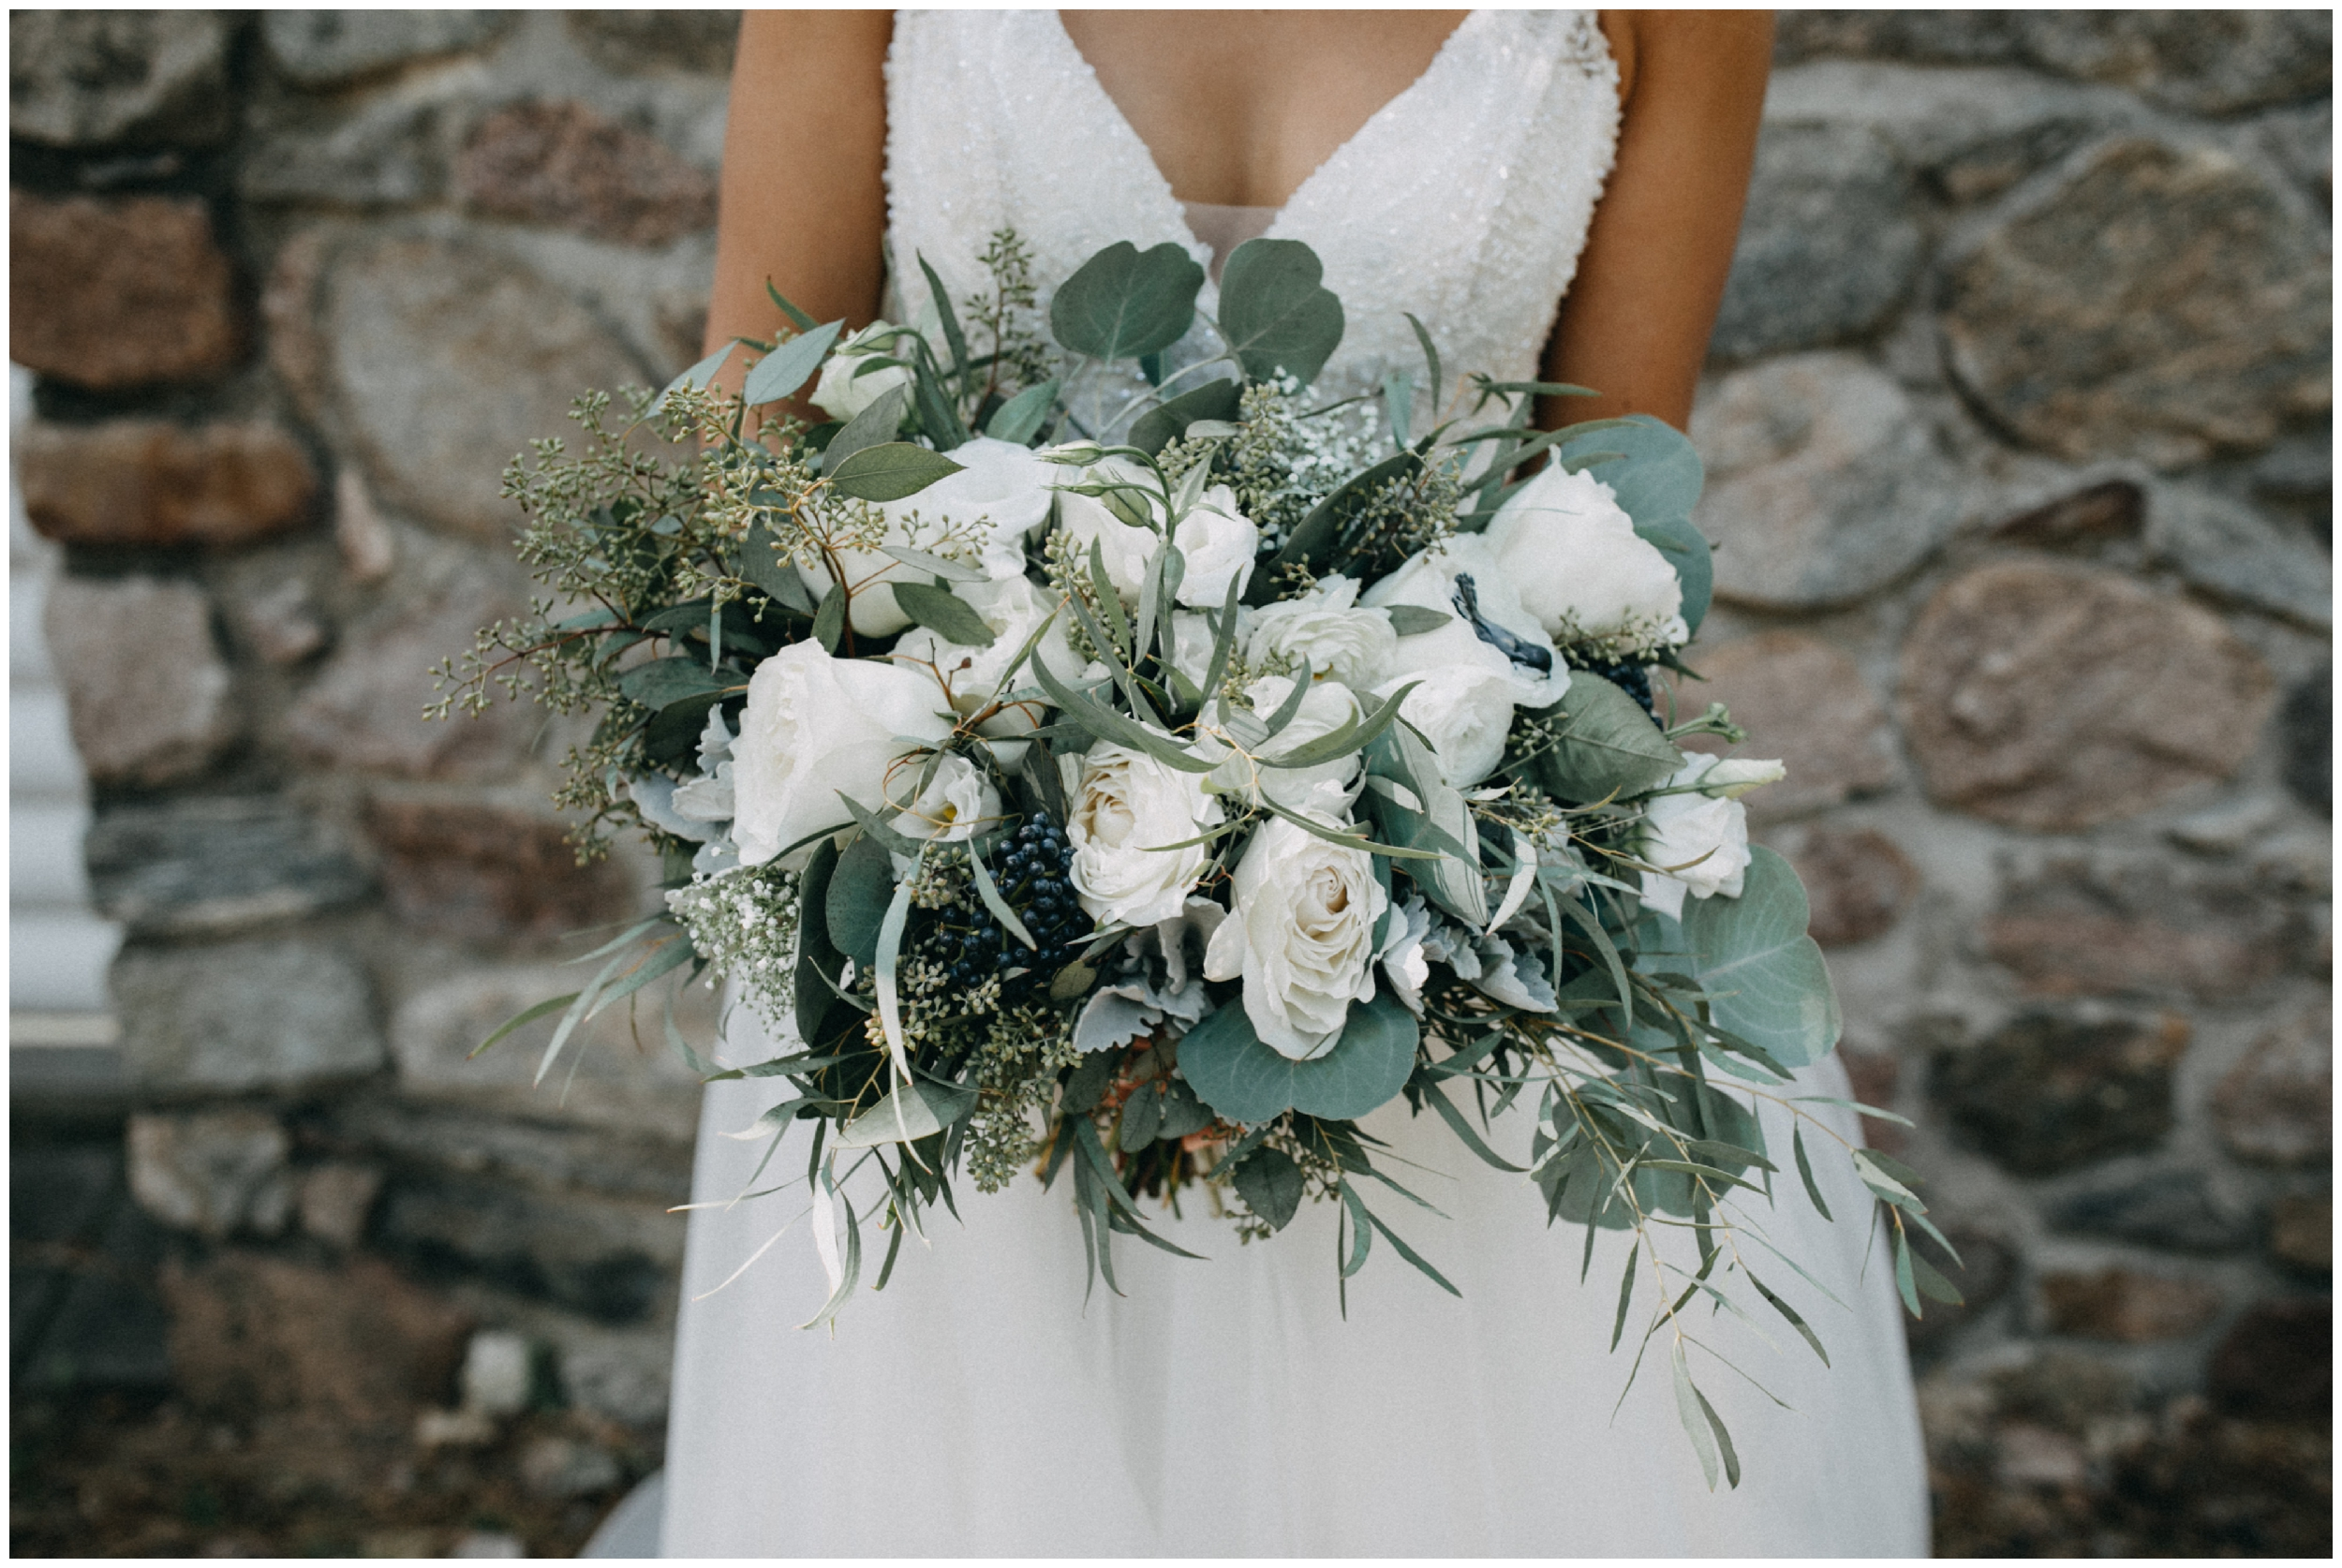 Beautiful white rose and organic greenery wedding bouquet at Camp Foley photographed by Britt DeZeeuw